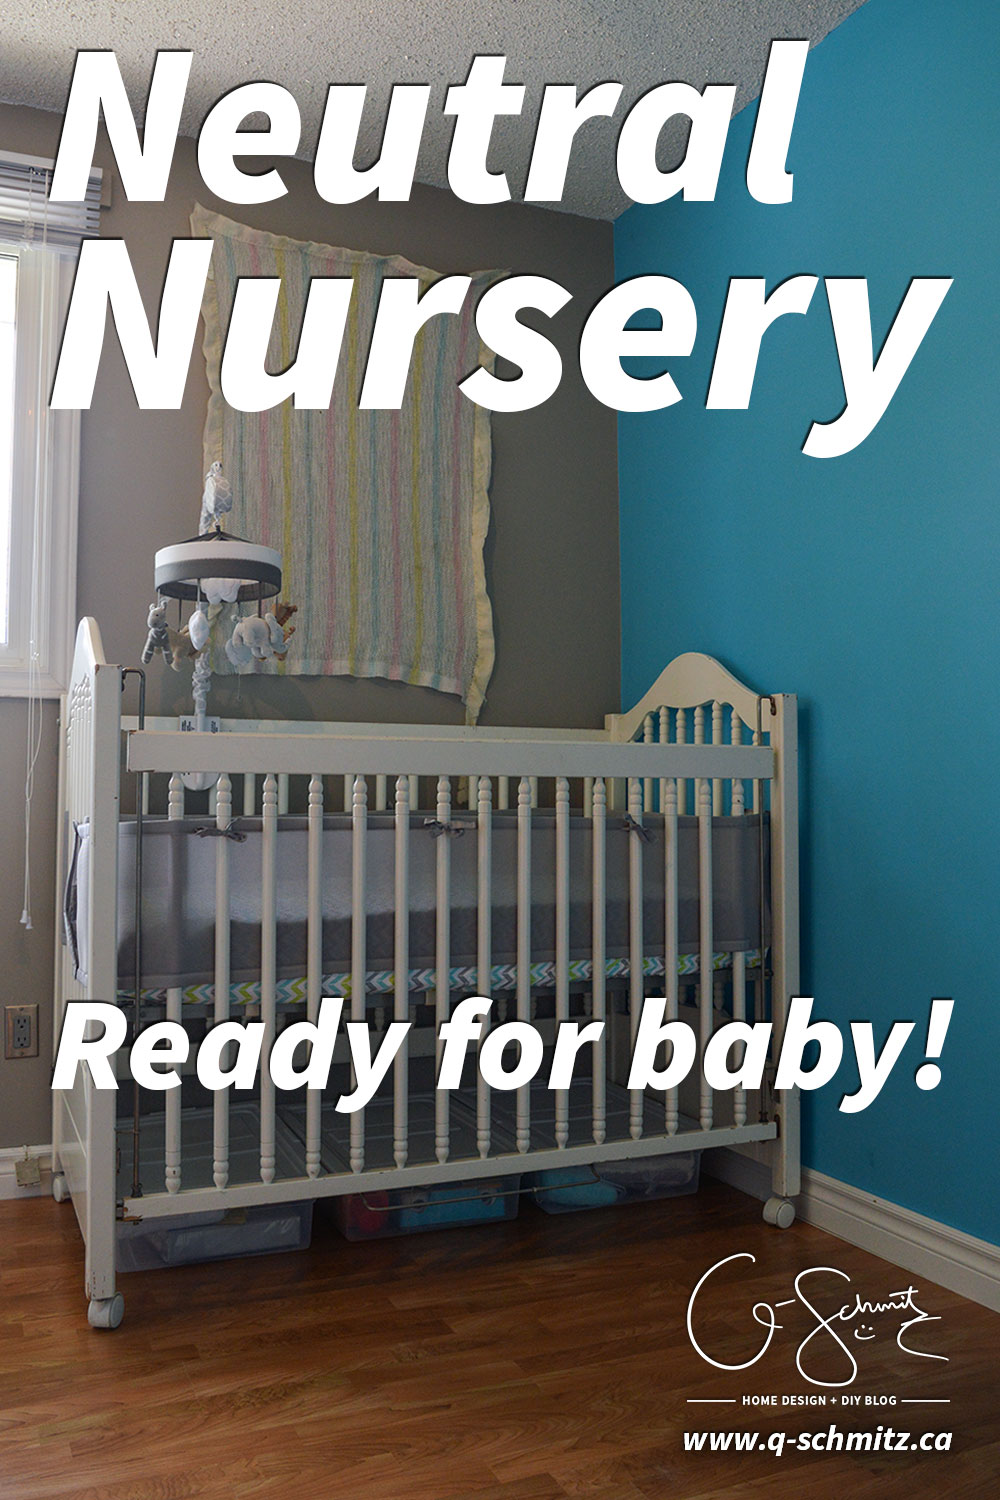 I finished our neutral nursery, and I've got all the essentials (crib, rocking chair, change table)… but would you mind helping decide if we need a rug?